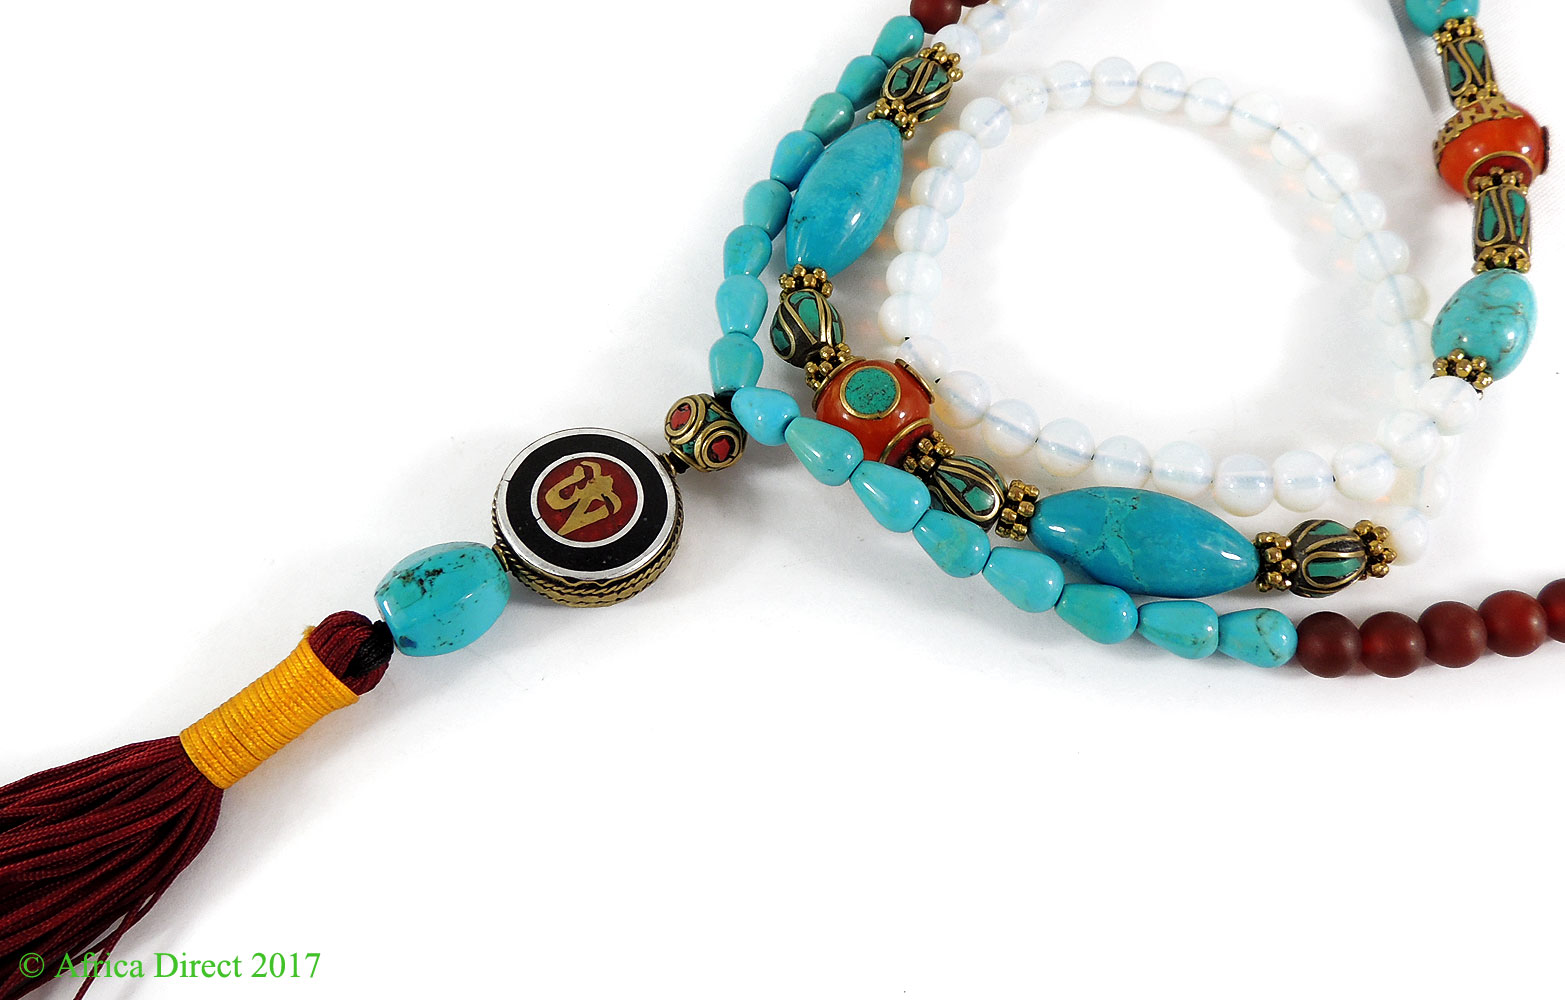 Tibetan Prayer Beads Necklace Baby Moon Turquoise 47 Inch by